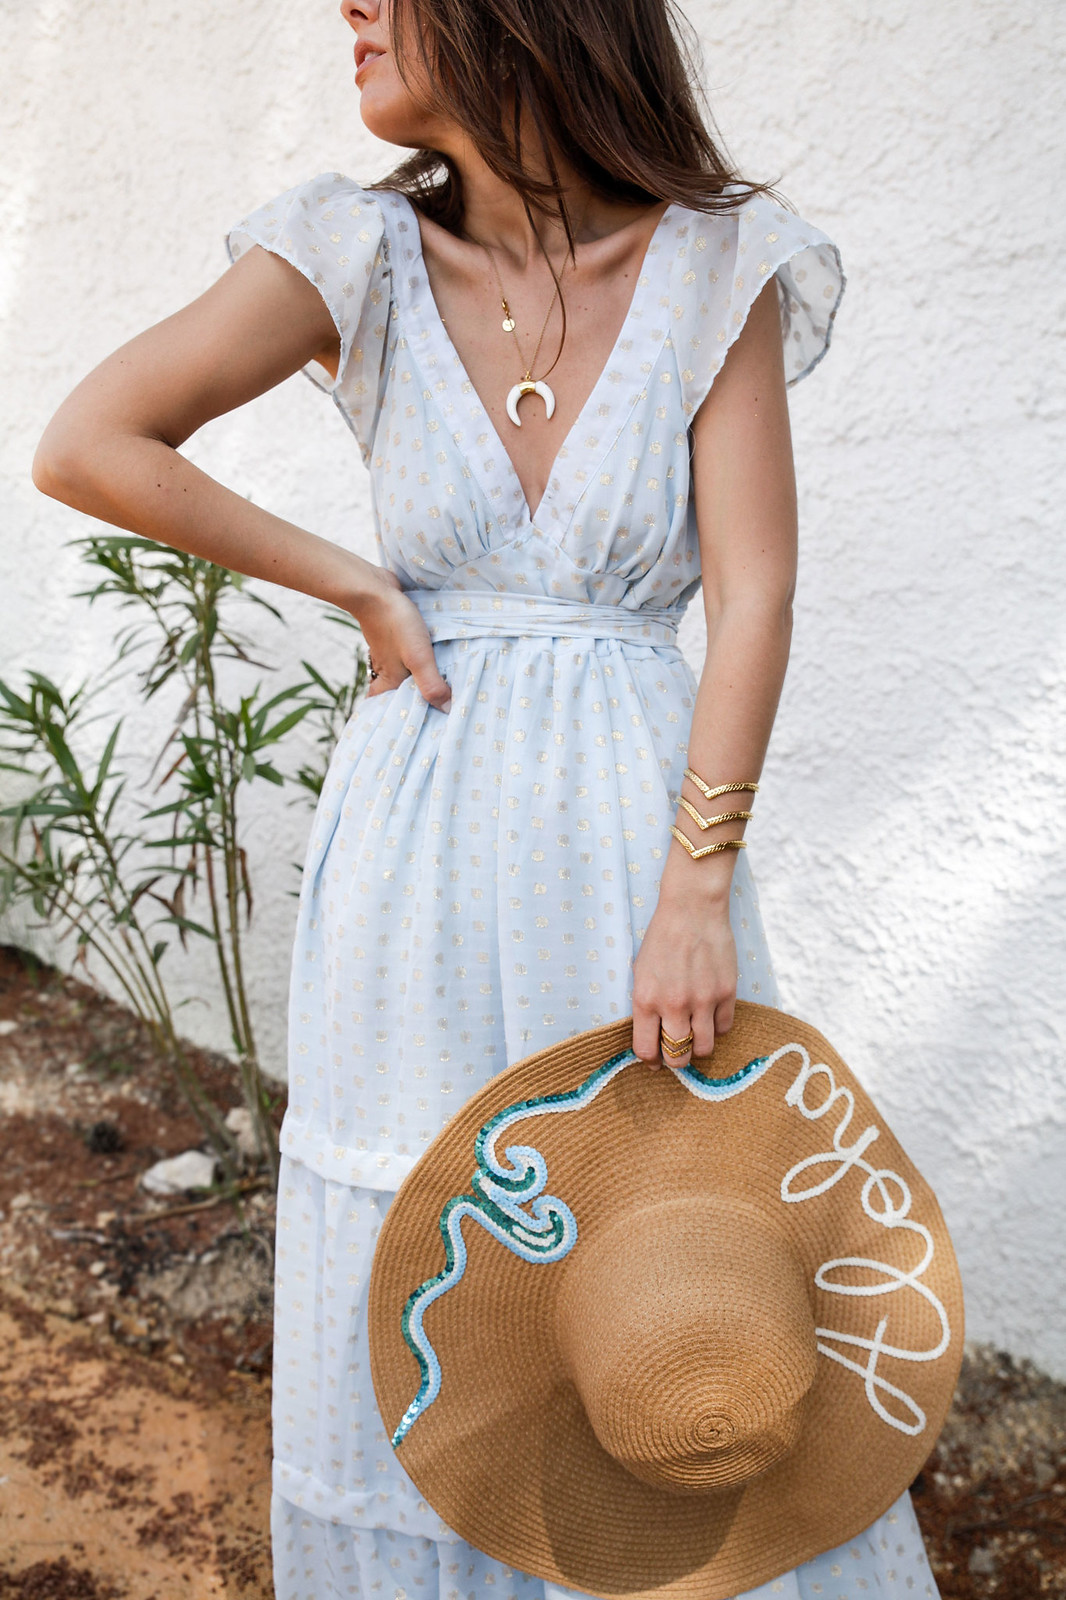 02_golden_dots_lunares_dorados_vestido_azul_boho_deby_debo_long_dress_theguestgirl_influencer_barcelona_style_content_creator_fashion_spain